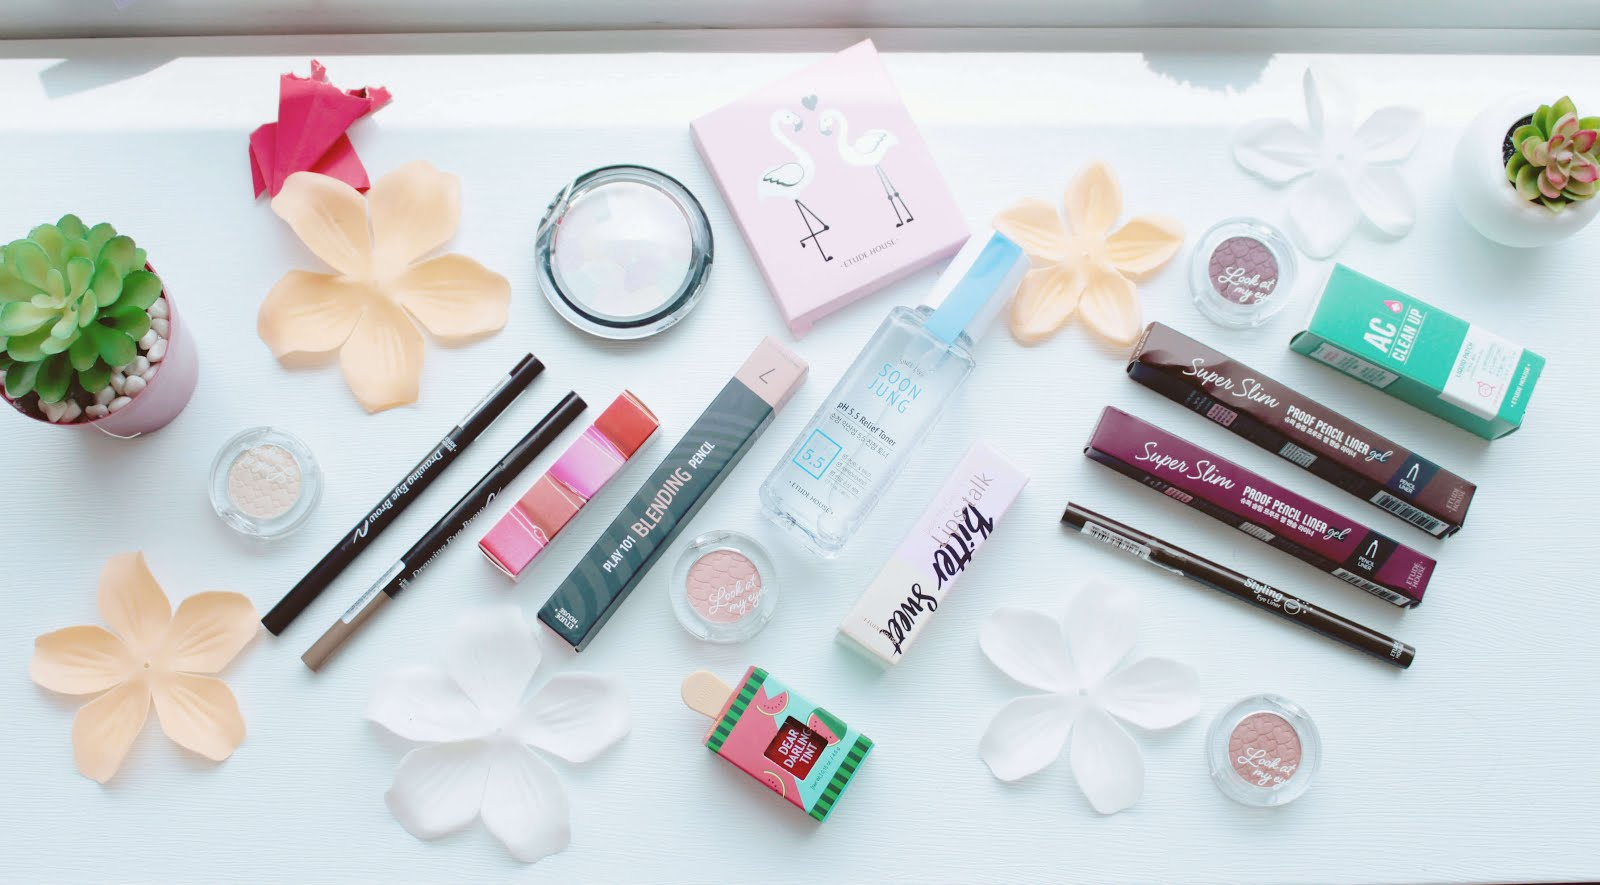 etude house one brand korean makeup haul kbeauty kcosmetics